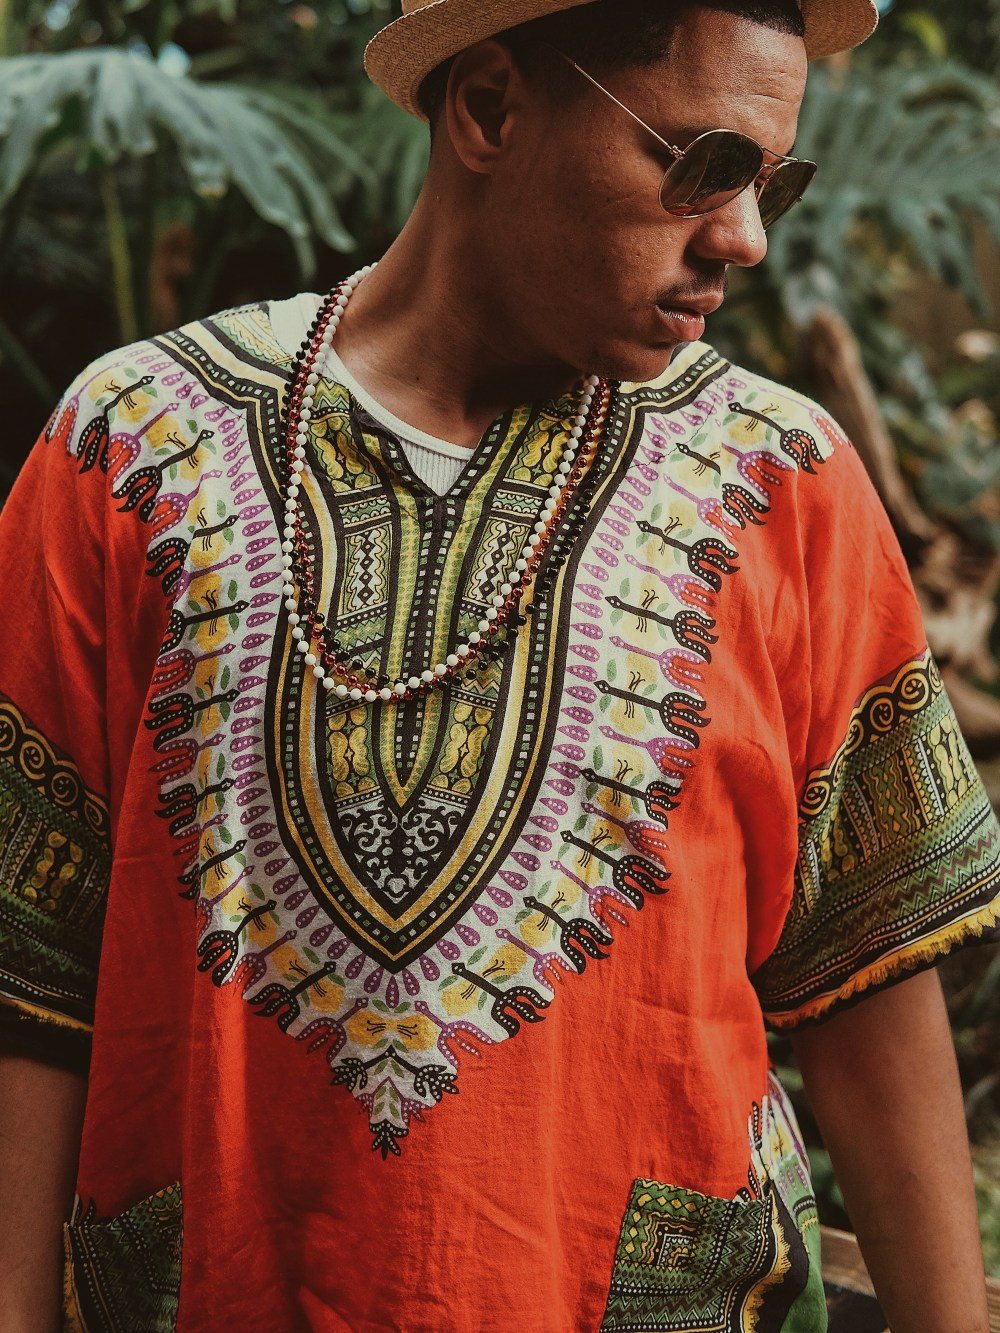 dashikiday 2018 drew-roberts-298300-unsplash